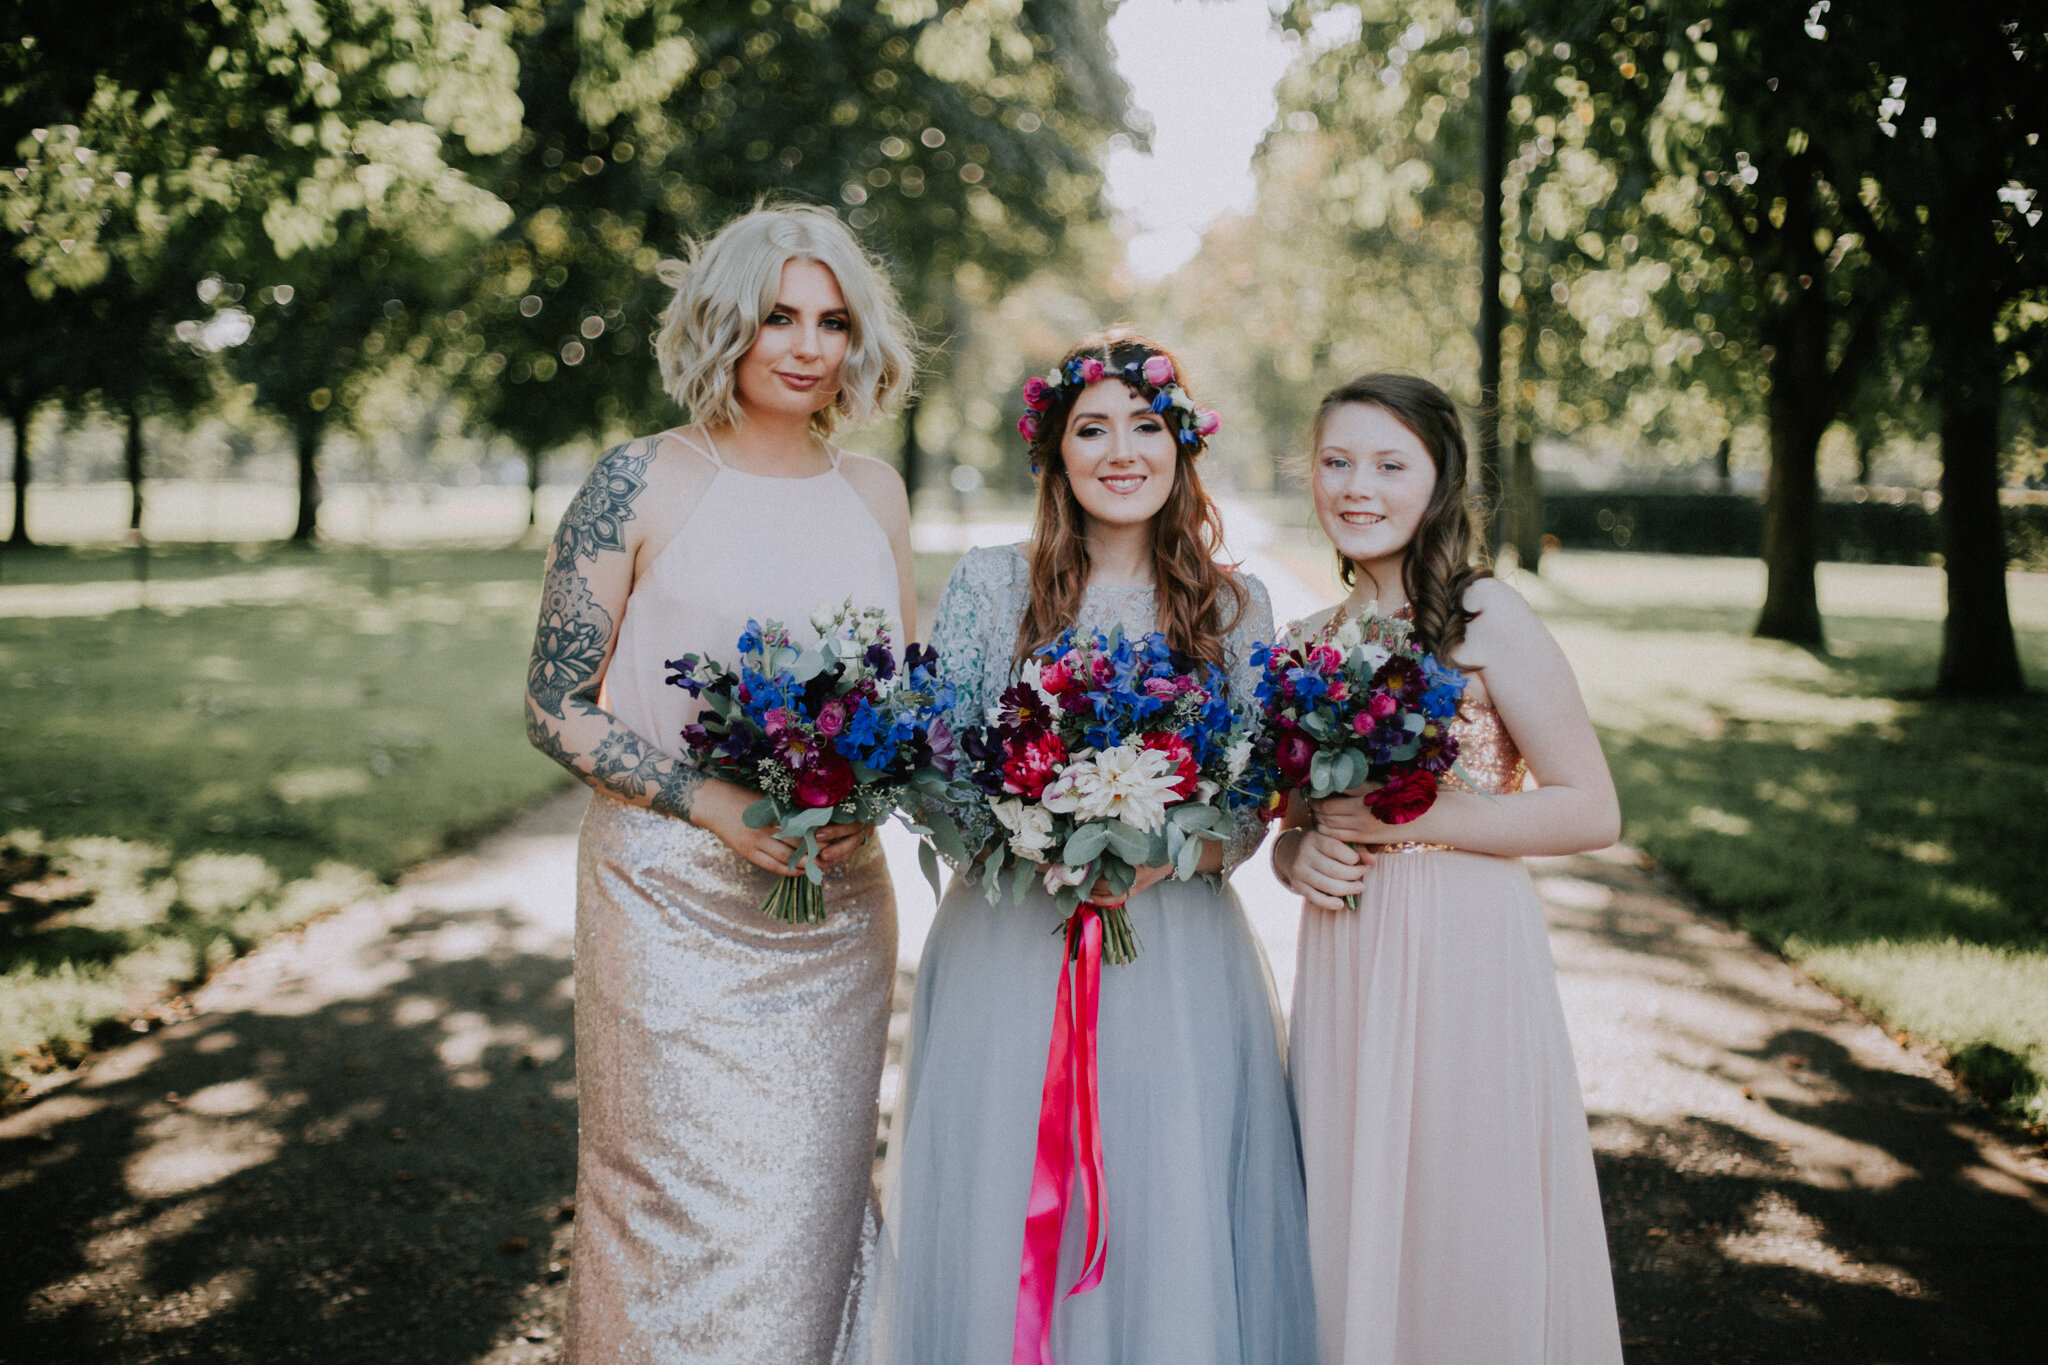 Girls bridal party photo in the Glasgow Green park